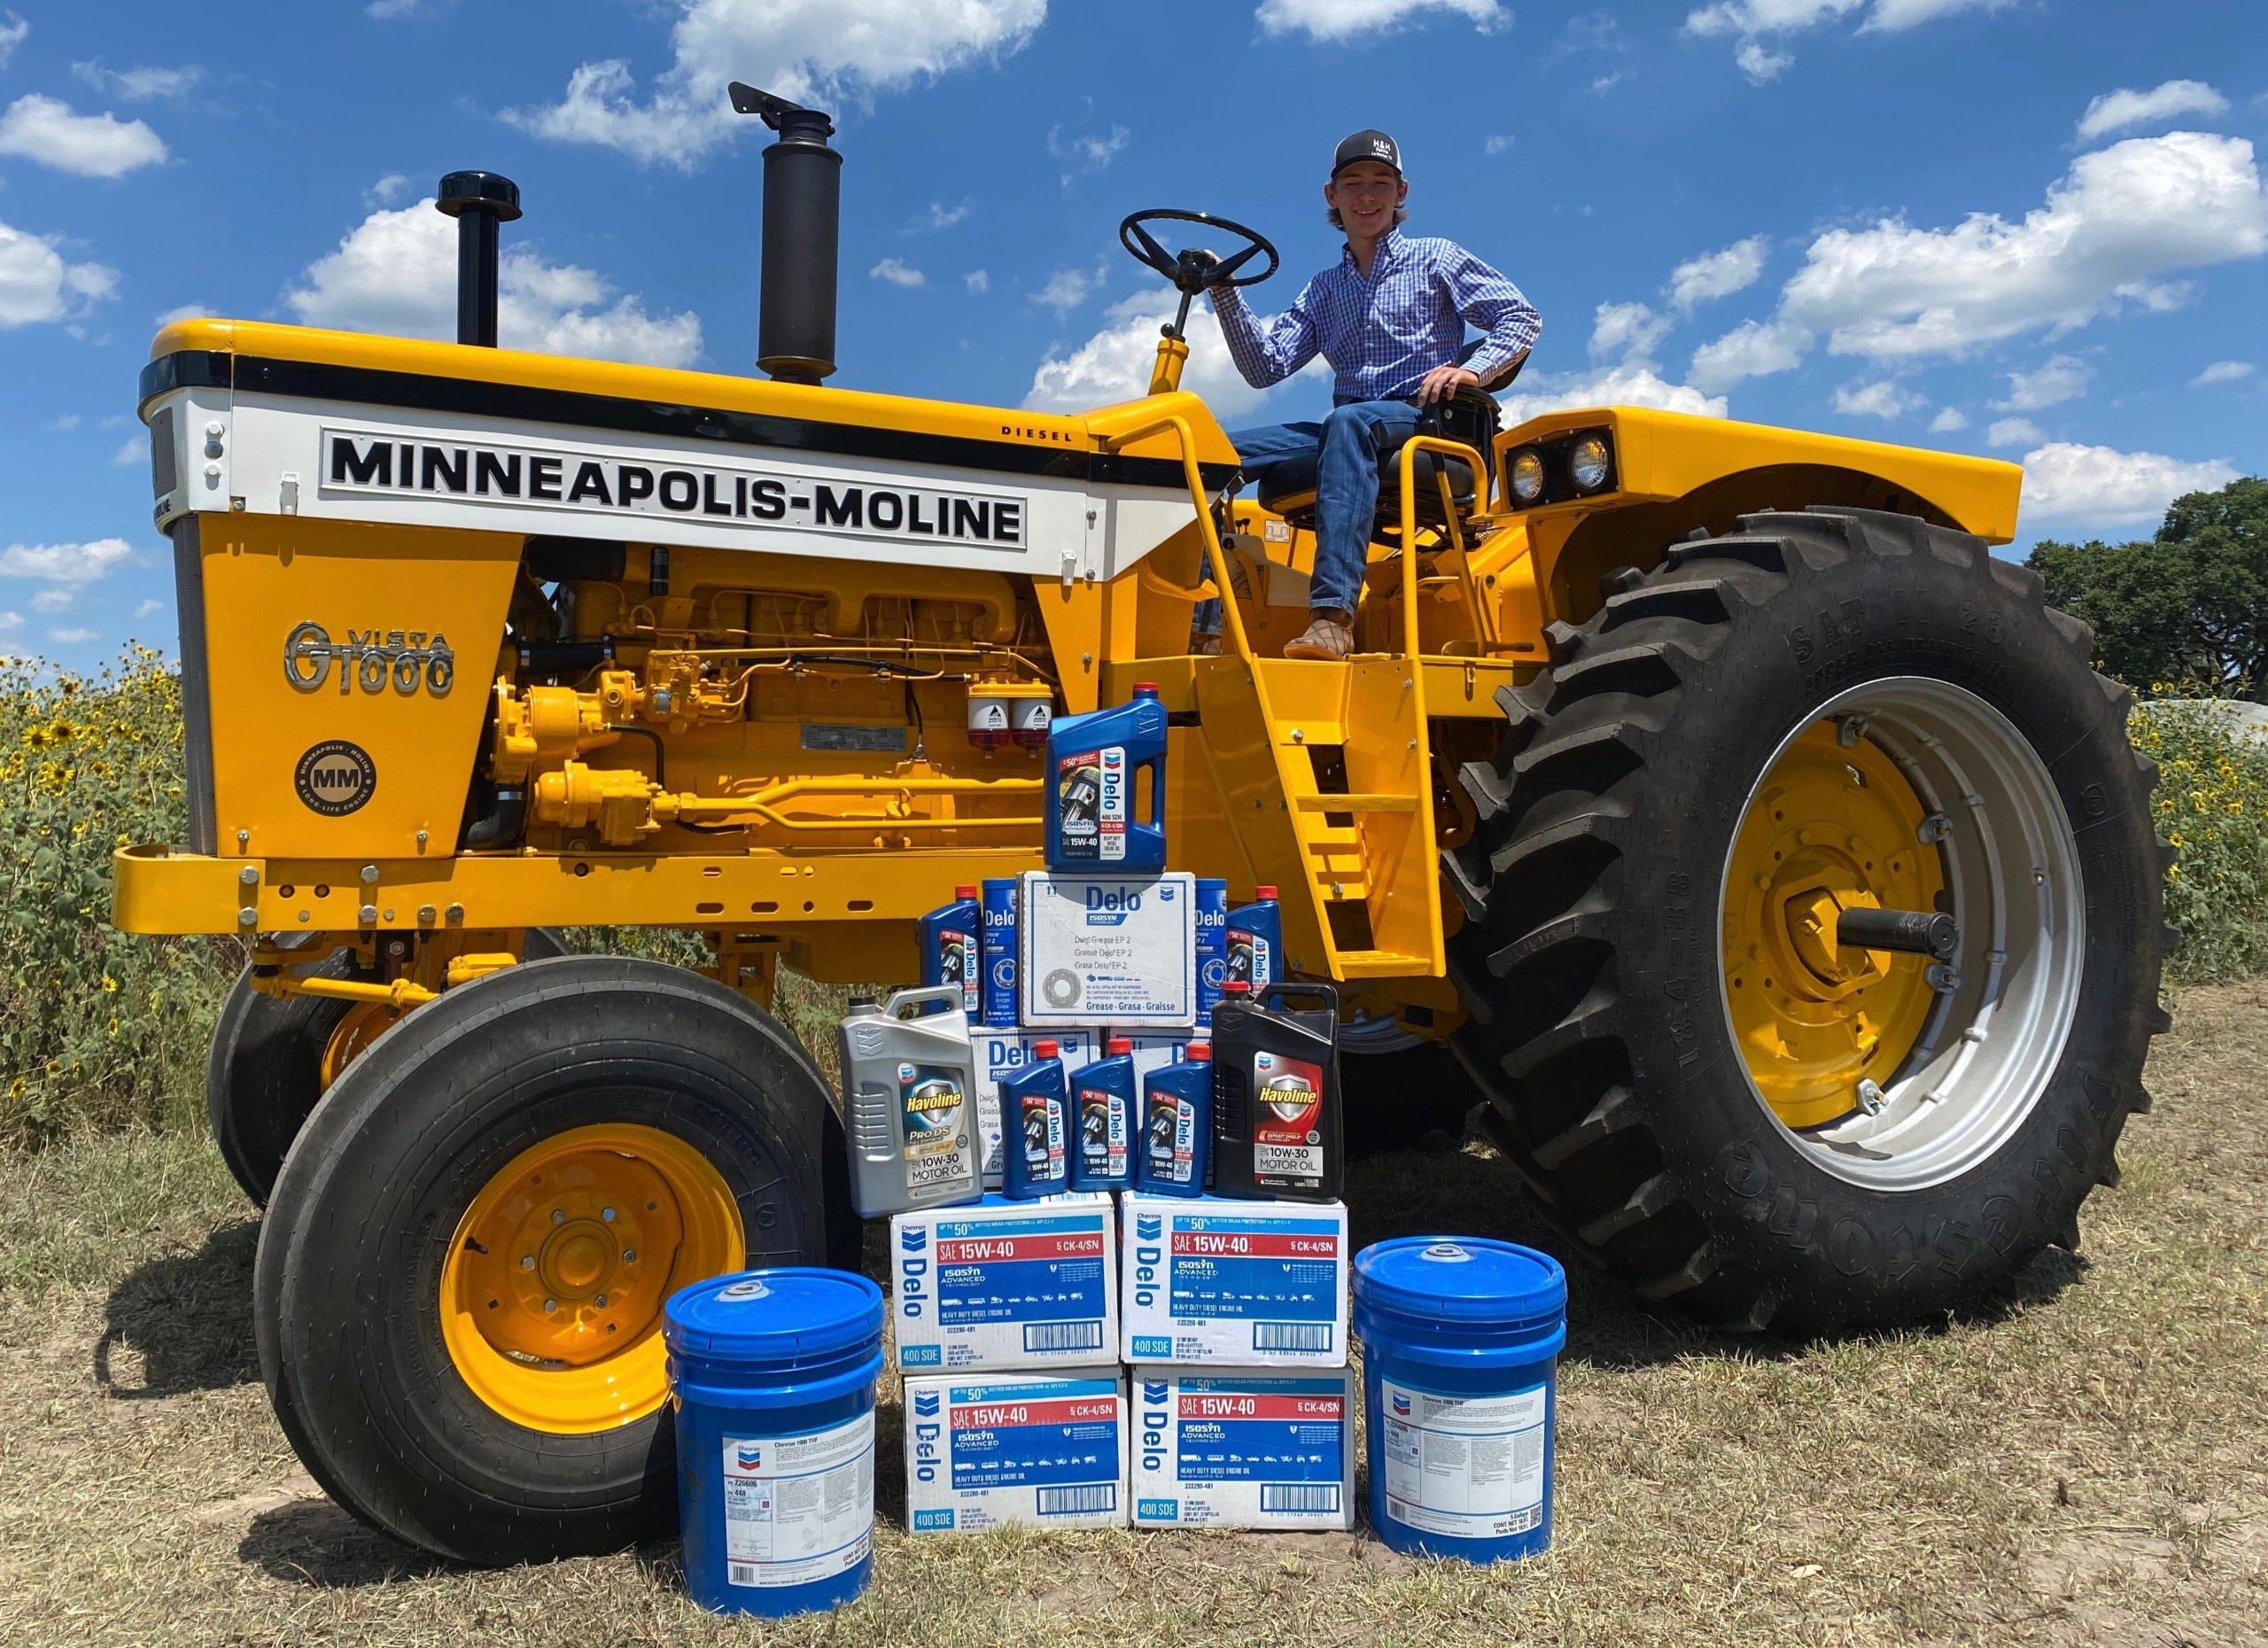 Texas Teen, Ricky Schilling, Crowned 2020 National Champion of the Chevron Delo Tractor Restoration Competition